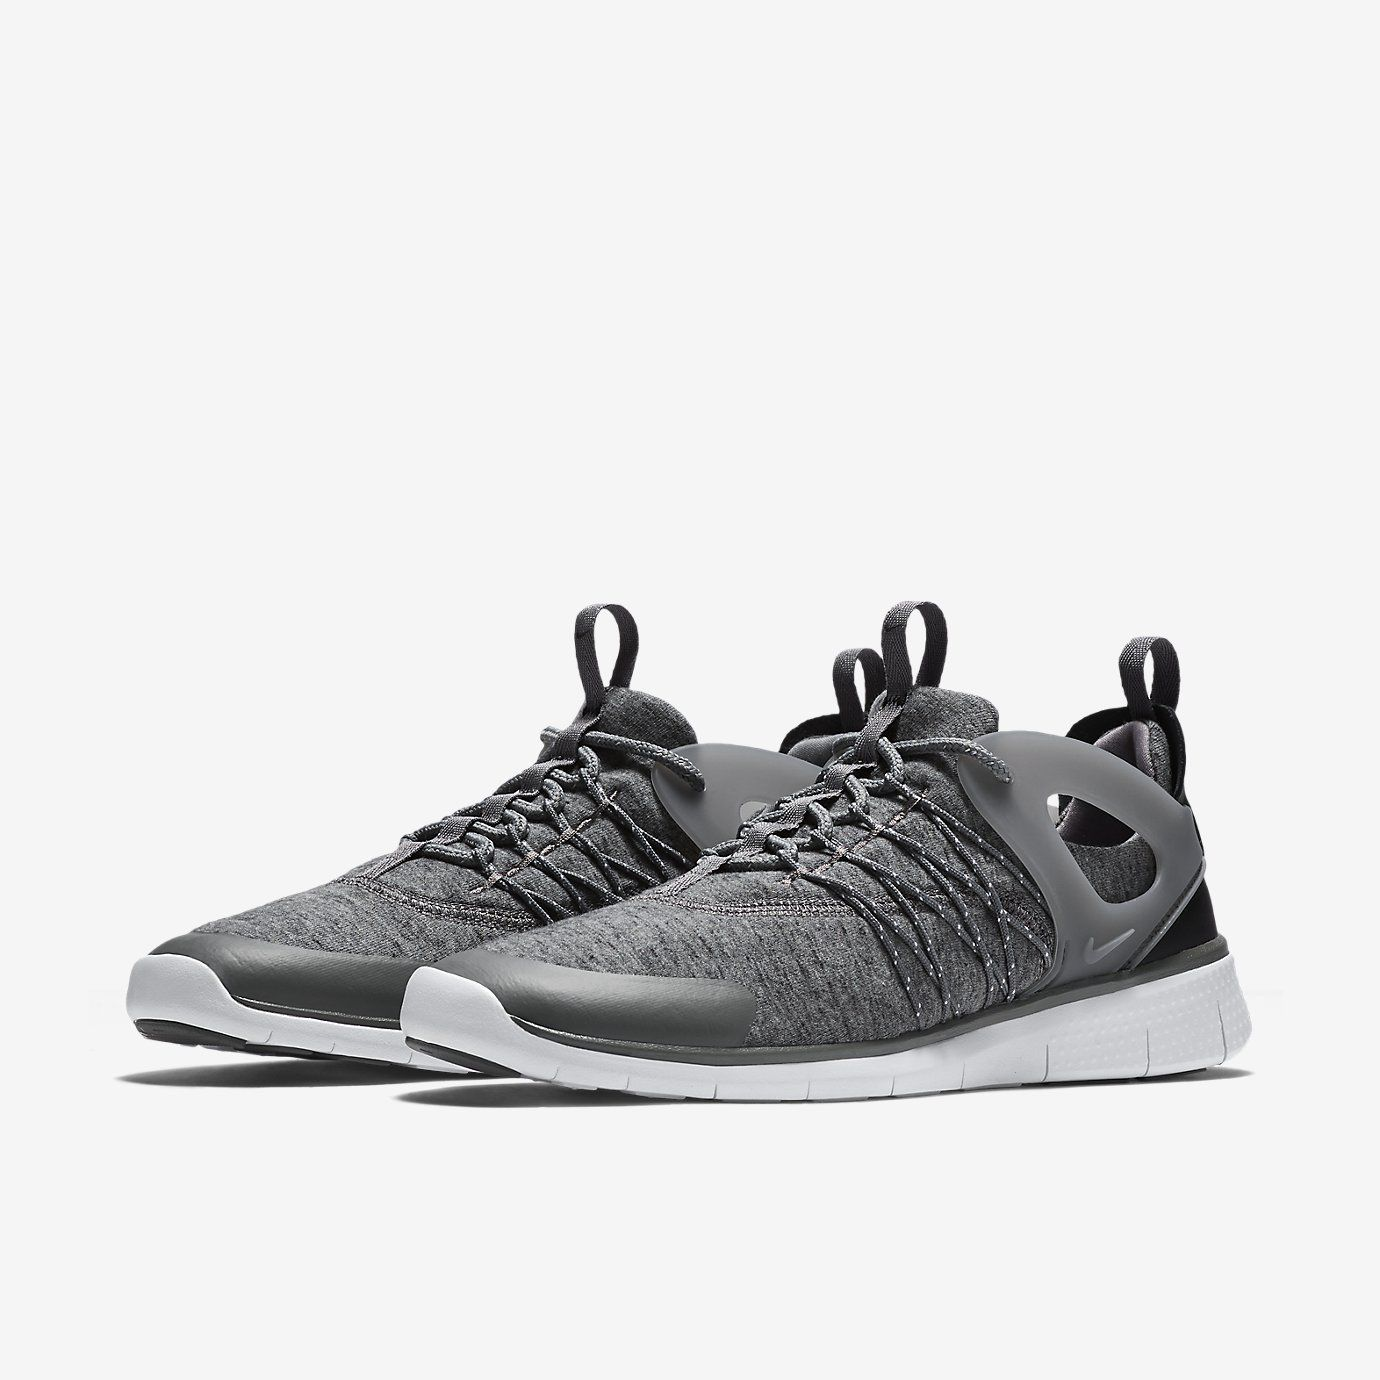 Nike adds its latest running silhouette for women, the Free Viritous in its  Fall/Winter Tech Fleece collection. The pair sports a grey bootie upper co